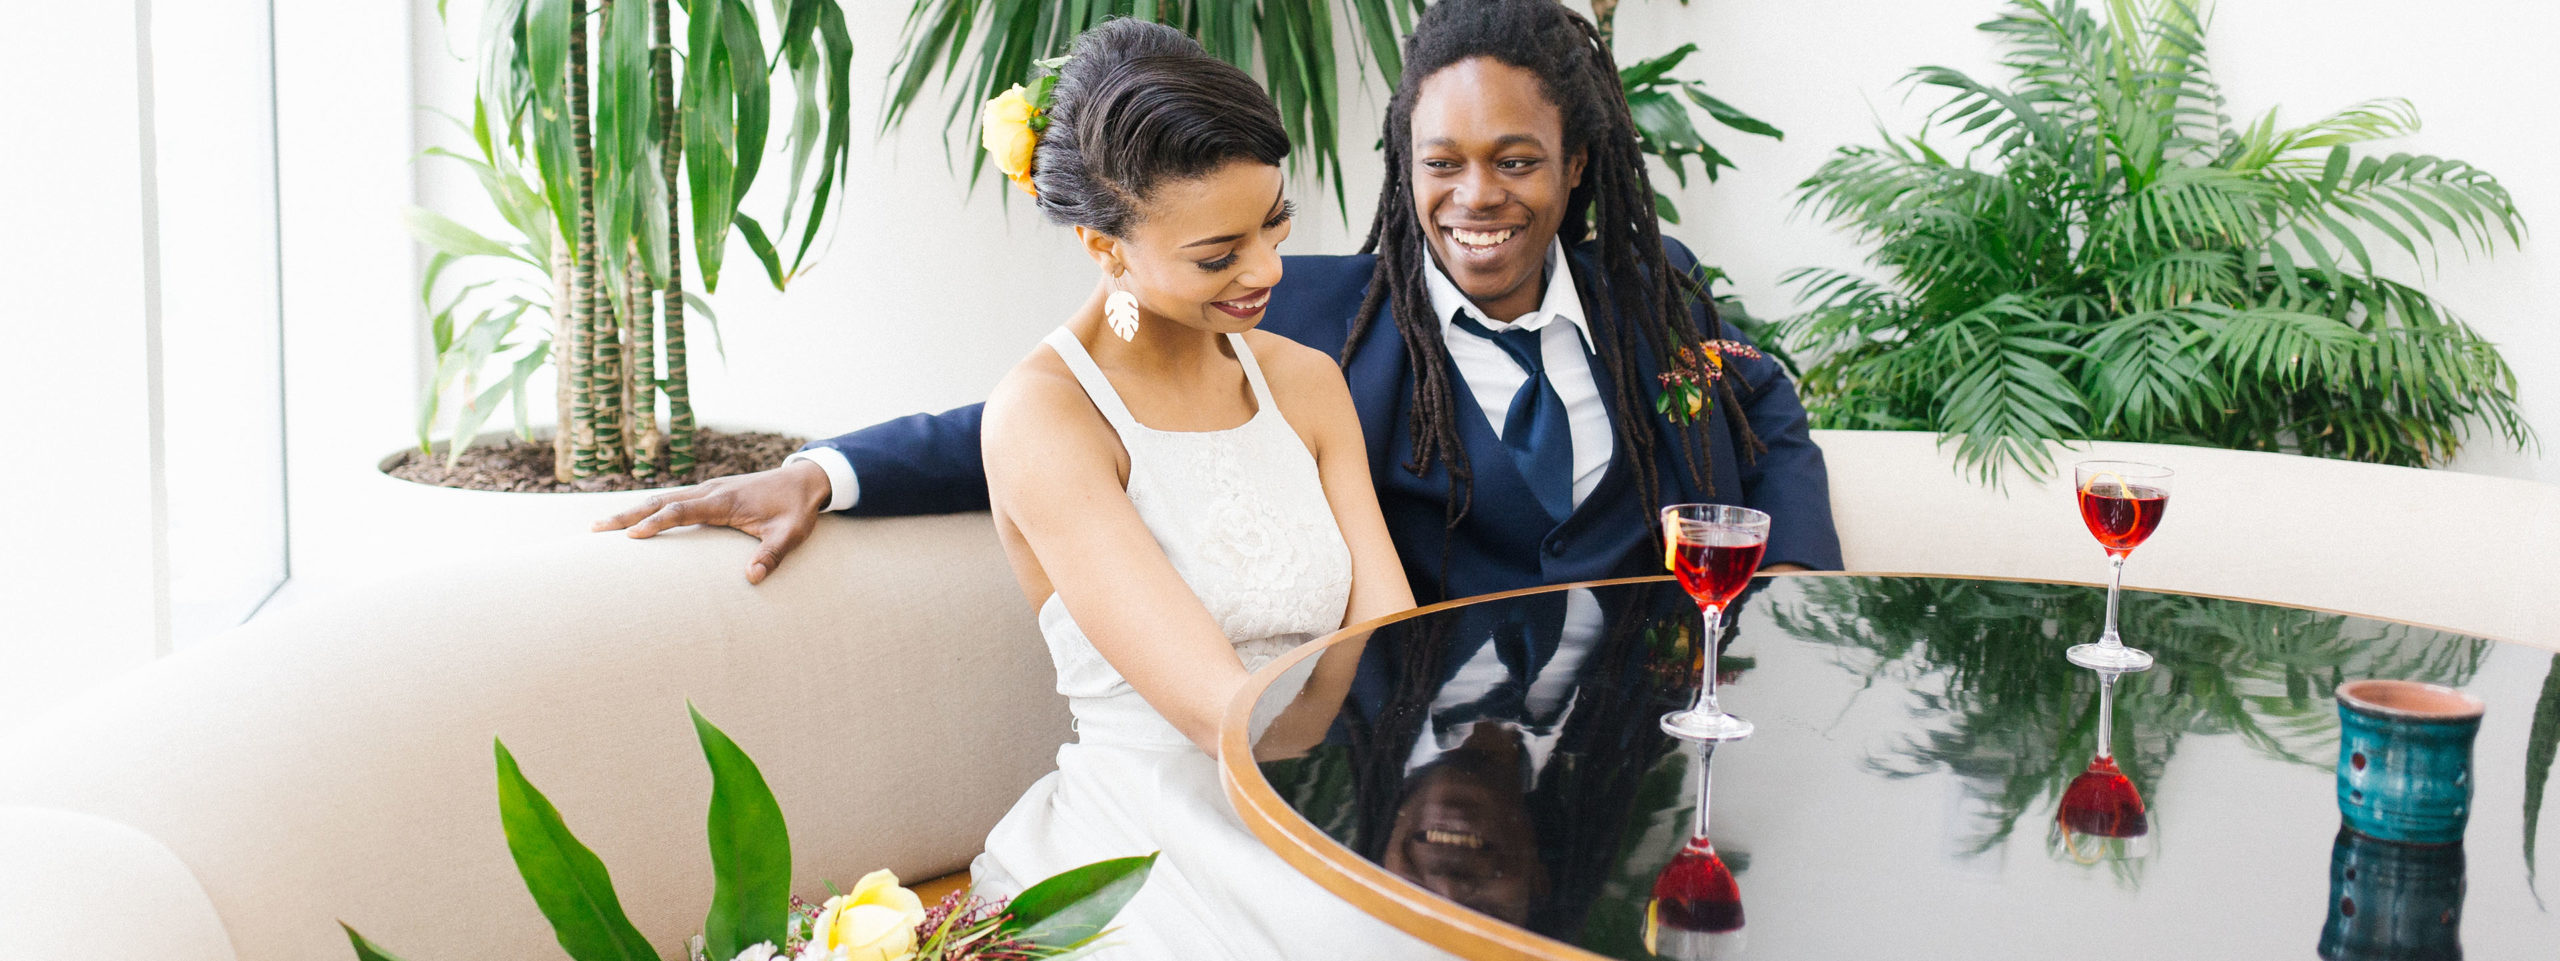 Bride and Groom at The Durham Restaurant with drinks in front of them smiling